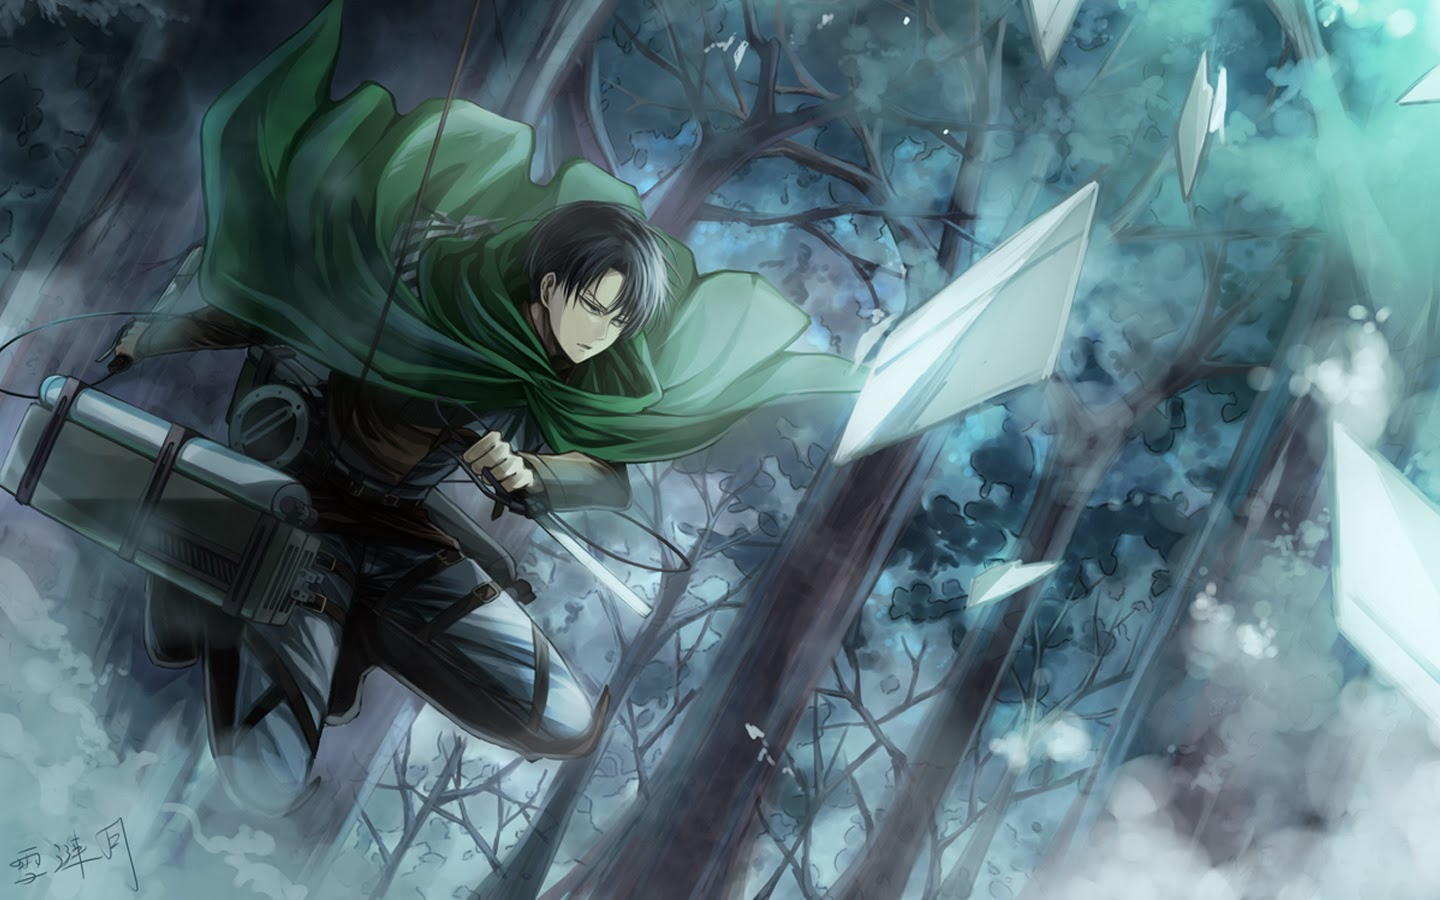 Free Download Levi Attack Titan Wallpaper 1440x900 For Your Desktop Mobile Tablet Explore 50 Levi Attack On Titan Wallpaper Aot Levi Wallpaper Attack On Titan Wallpaper Captain Levi Wallpaper